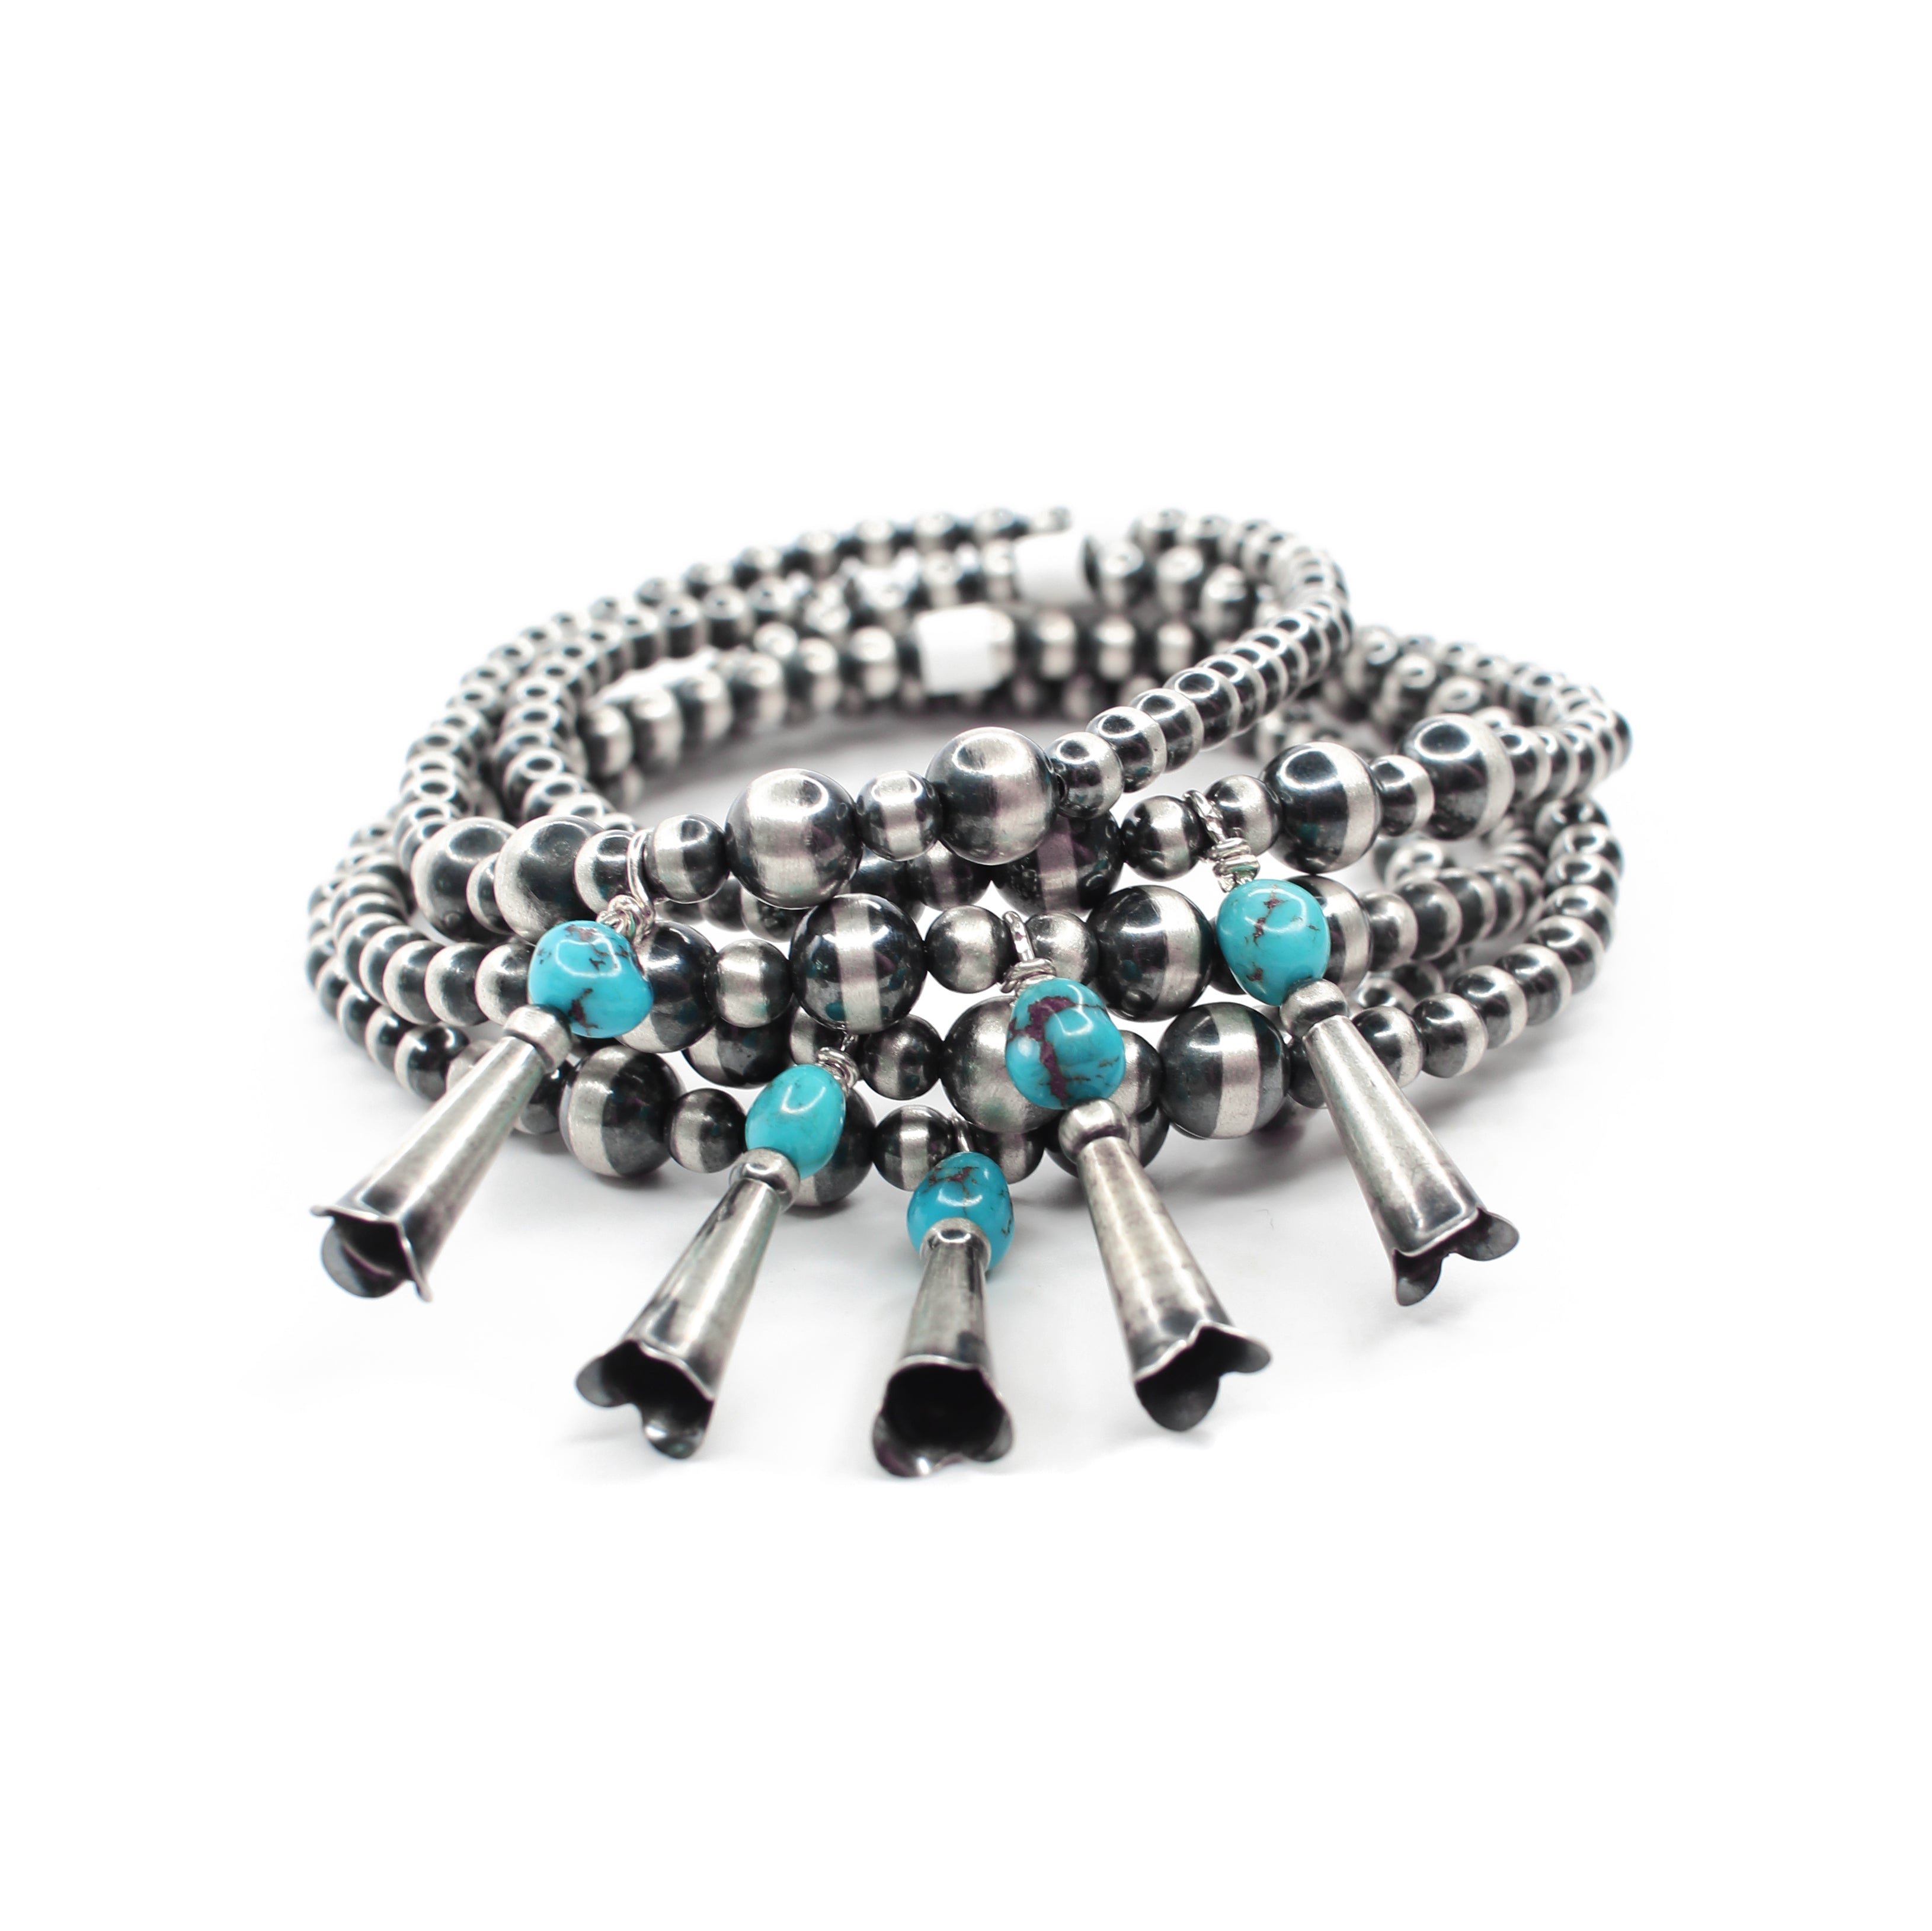 Navajo Pearl Stretch Bracelet - Turquoise & Blossom